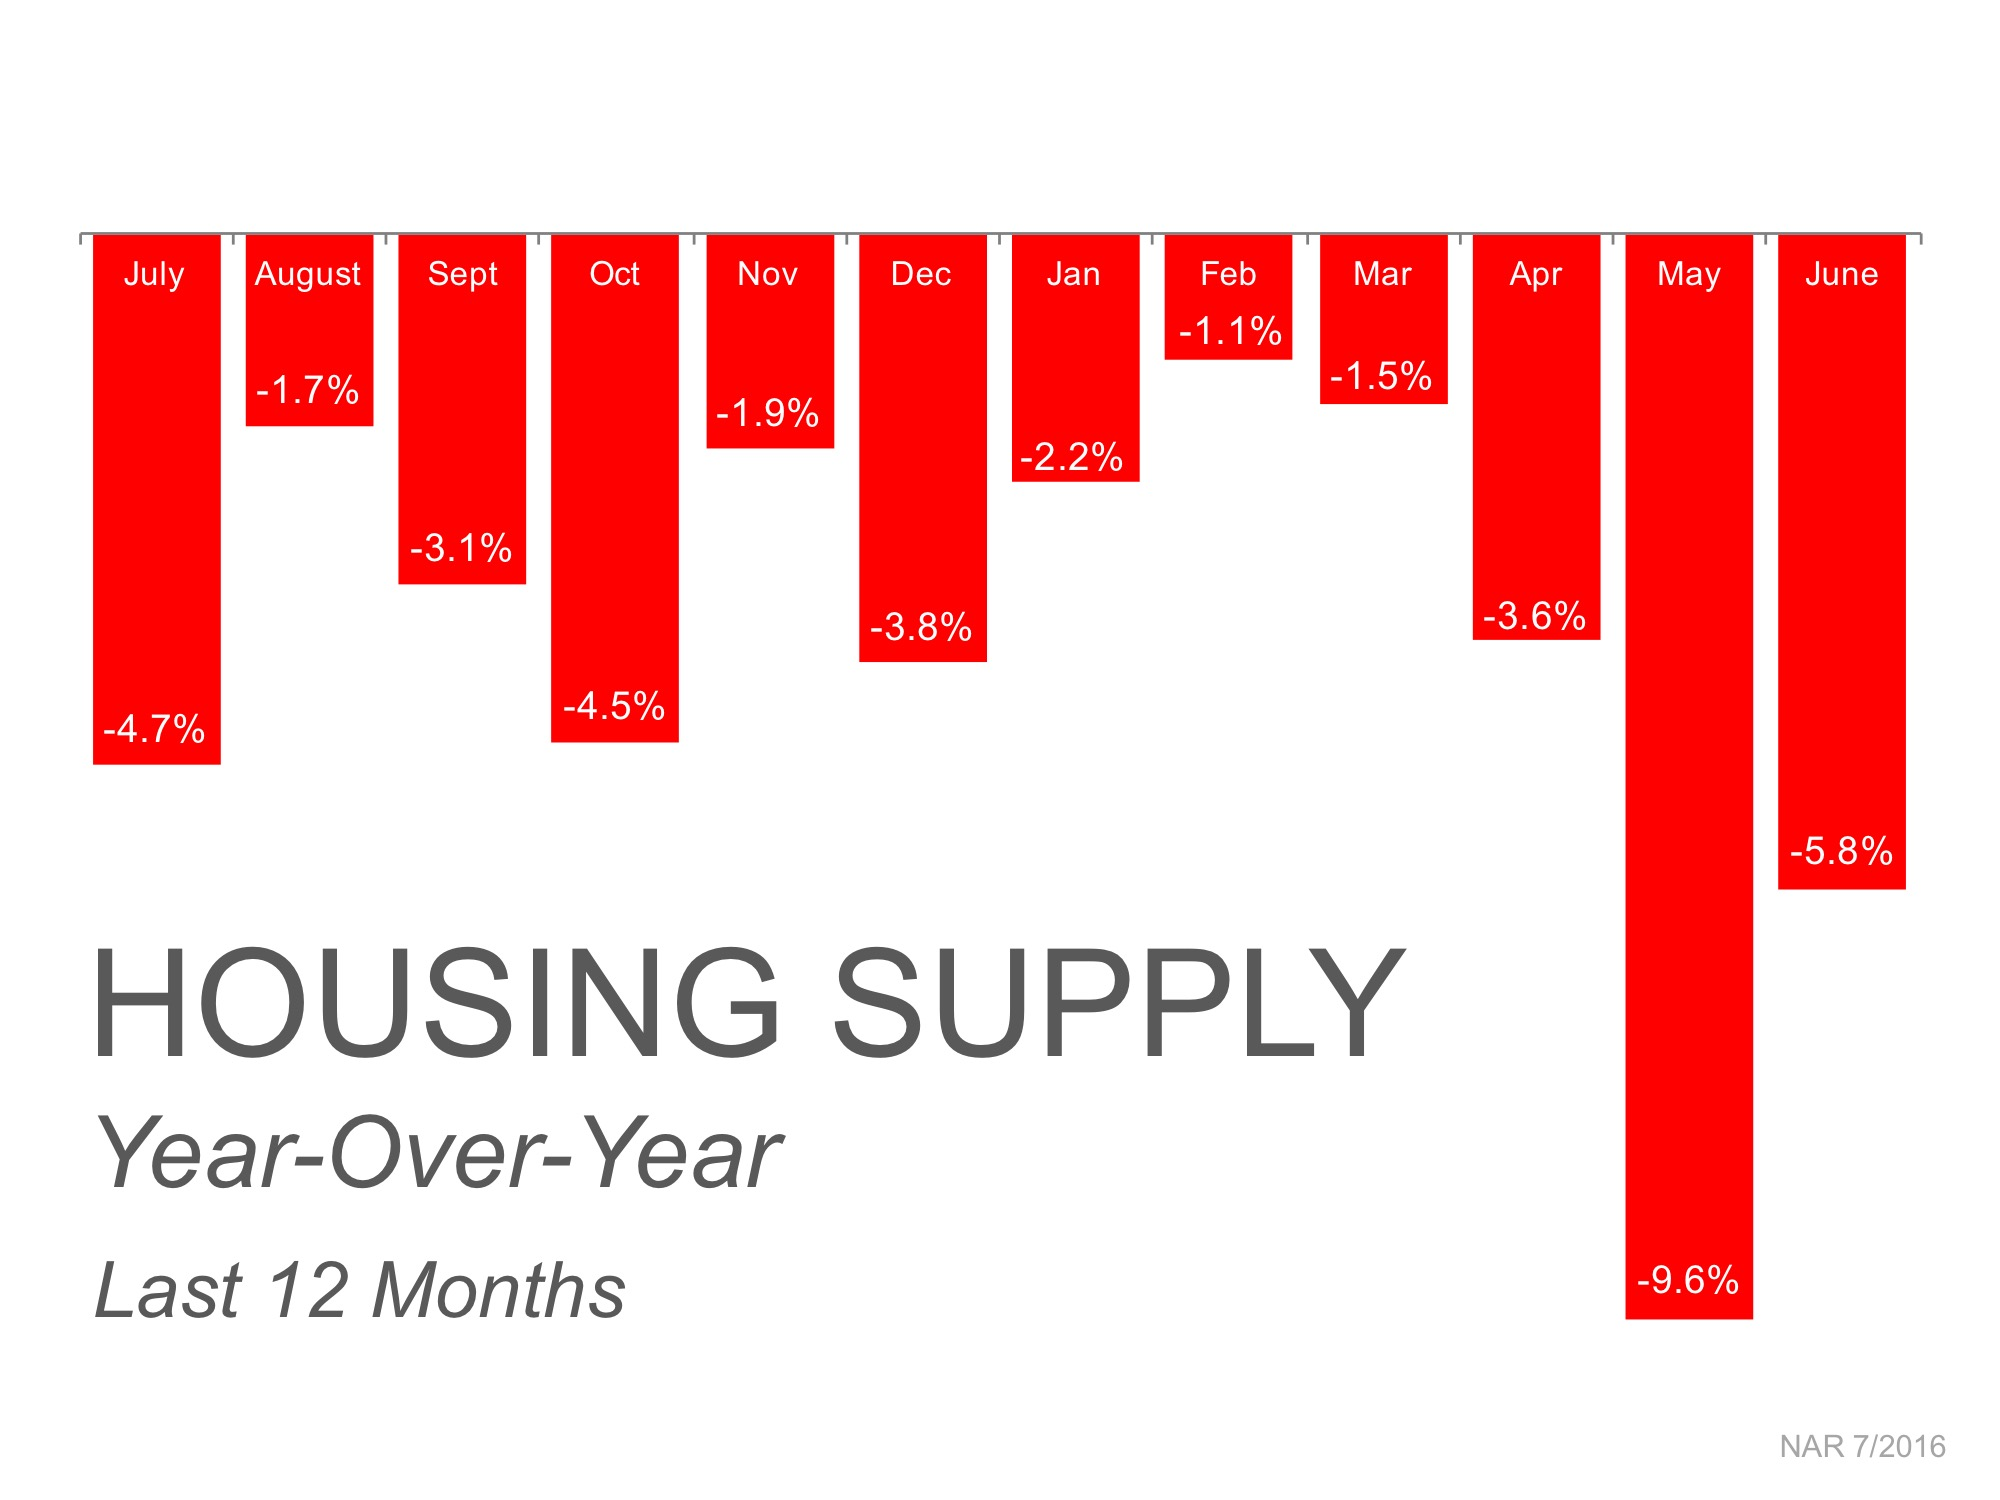 Housing Supply Year-Over-Year | My KCM